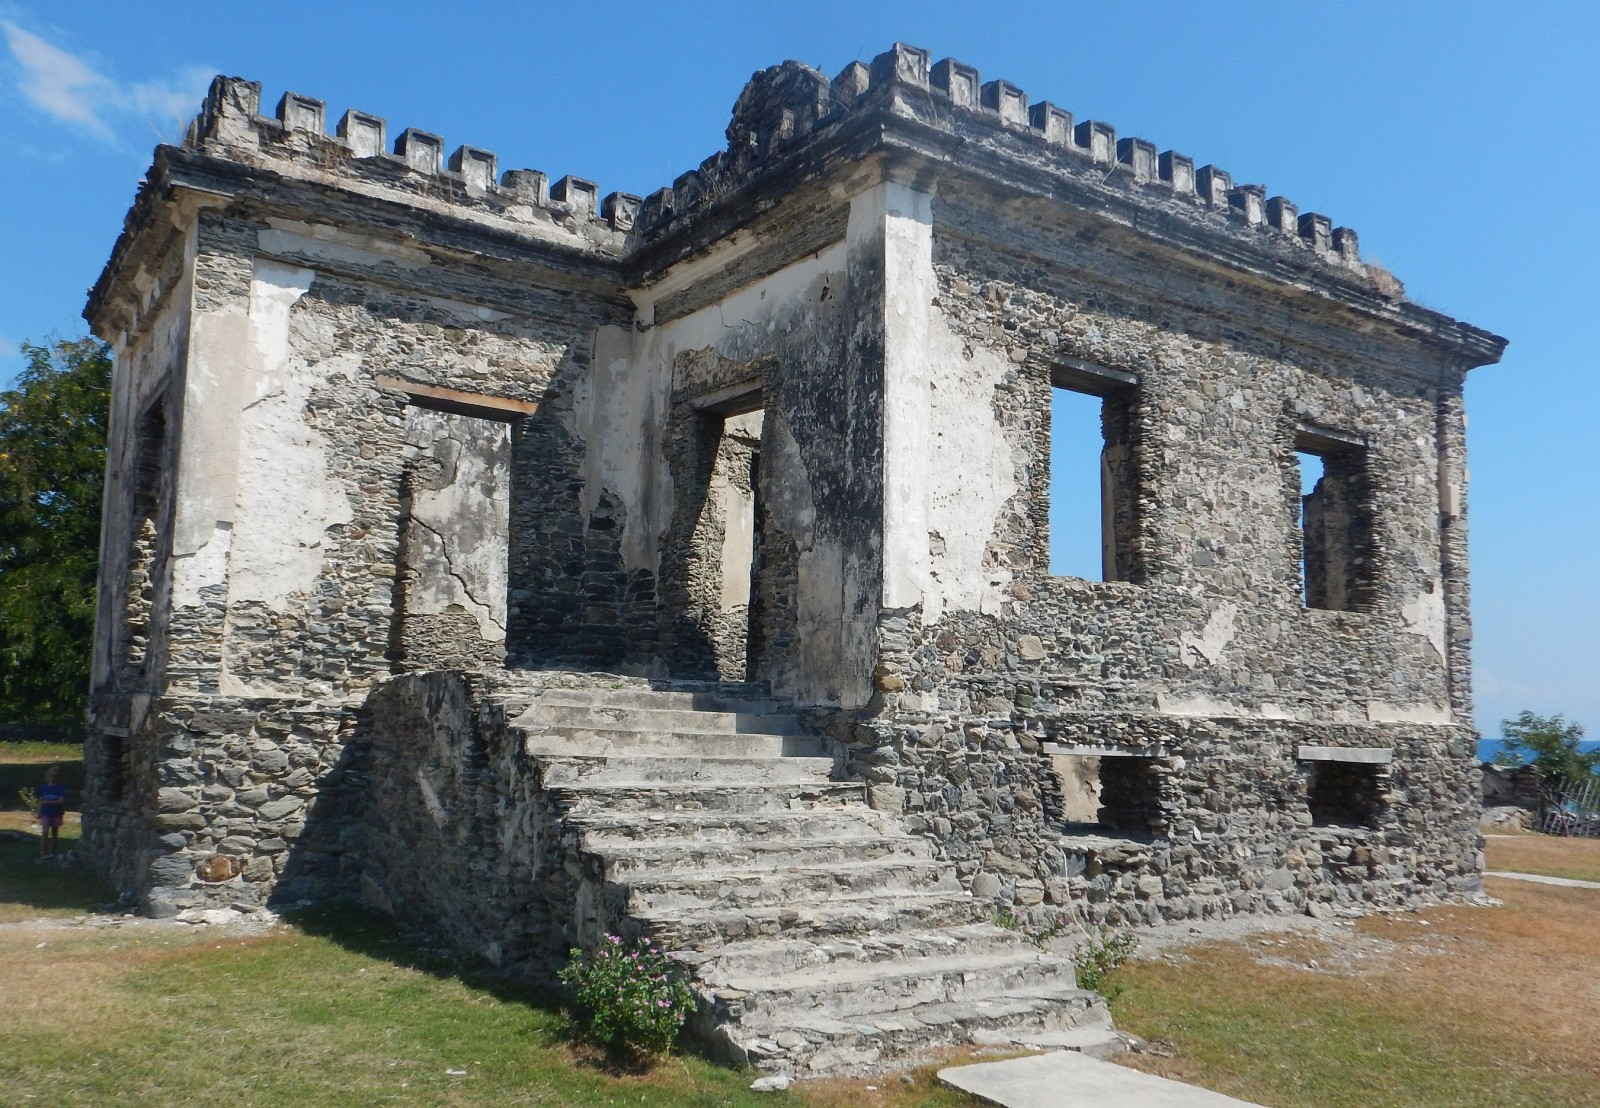 Ruins of a 1600's Portuguese prison where inmates were left to drown at high tide.